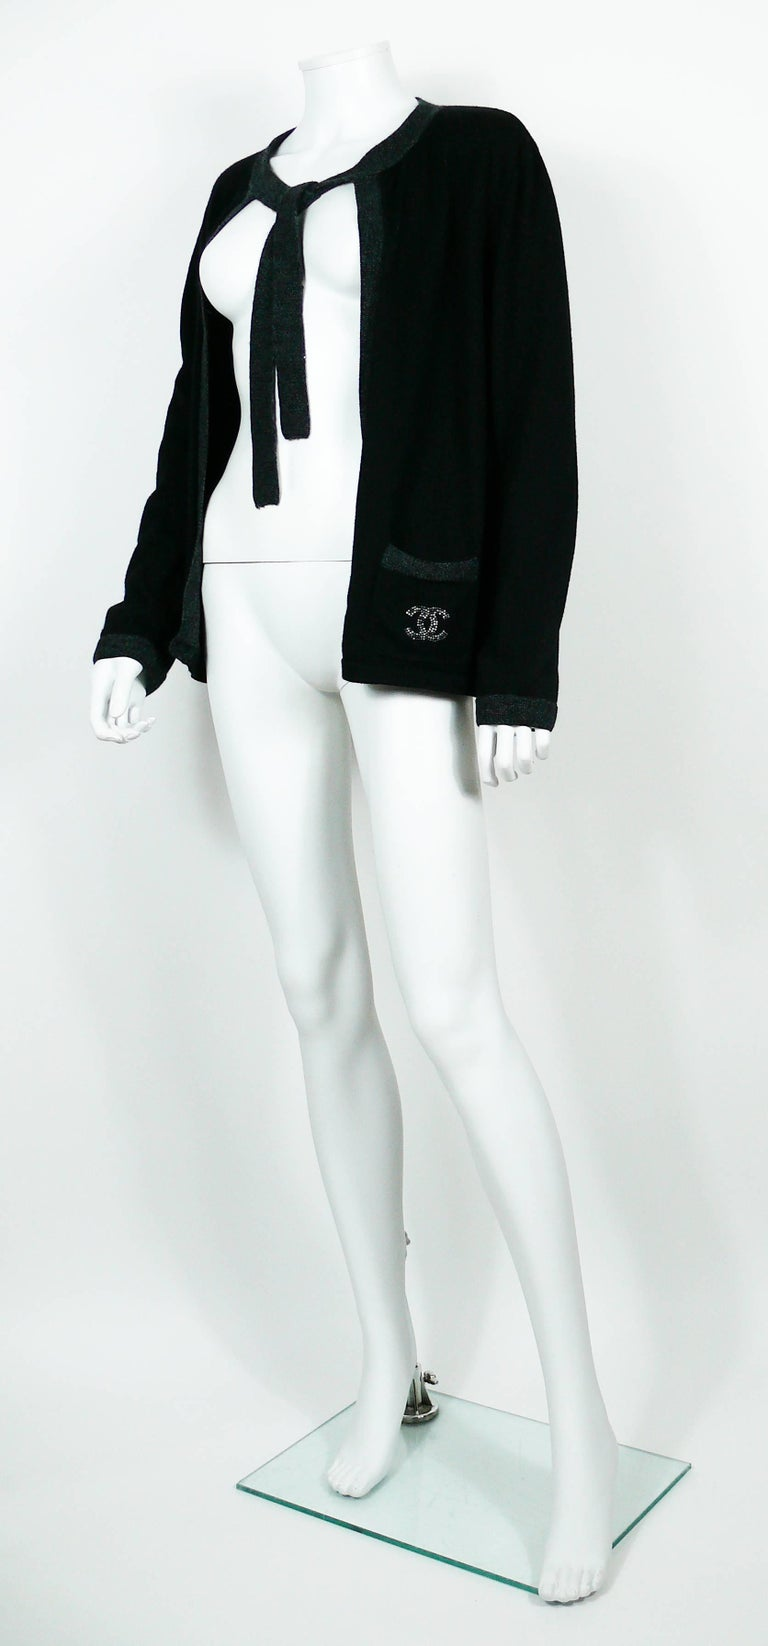 Women's Chanel Employee Uniform Black Wool Cardigan with CC Logo Size XL For Sale